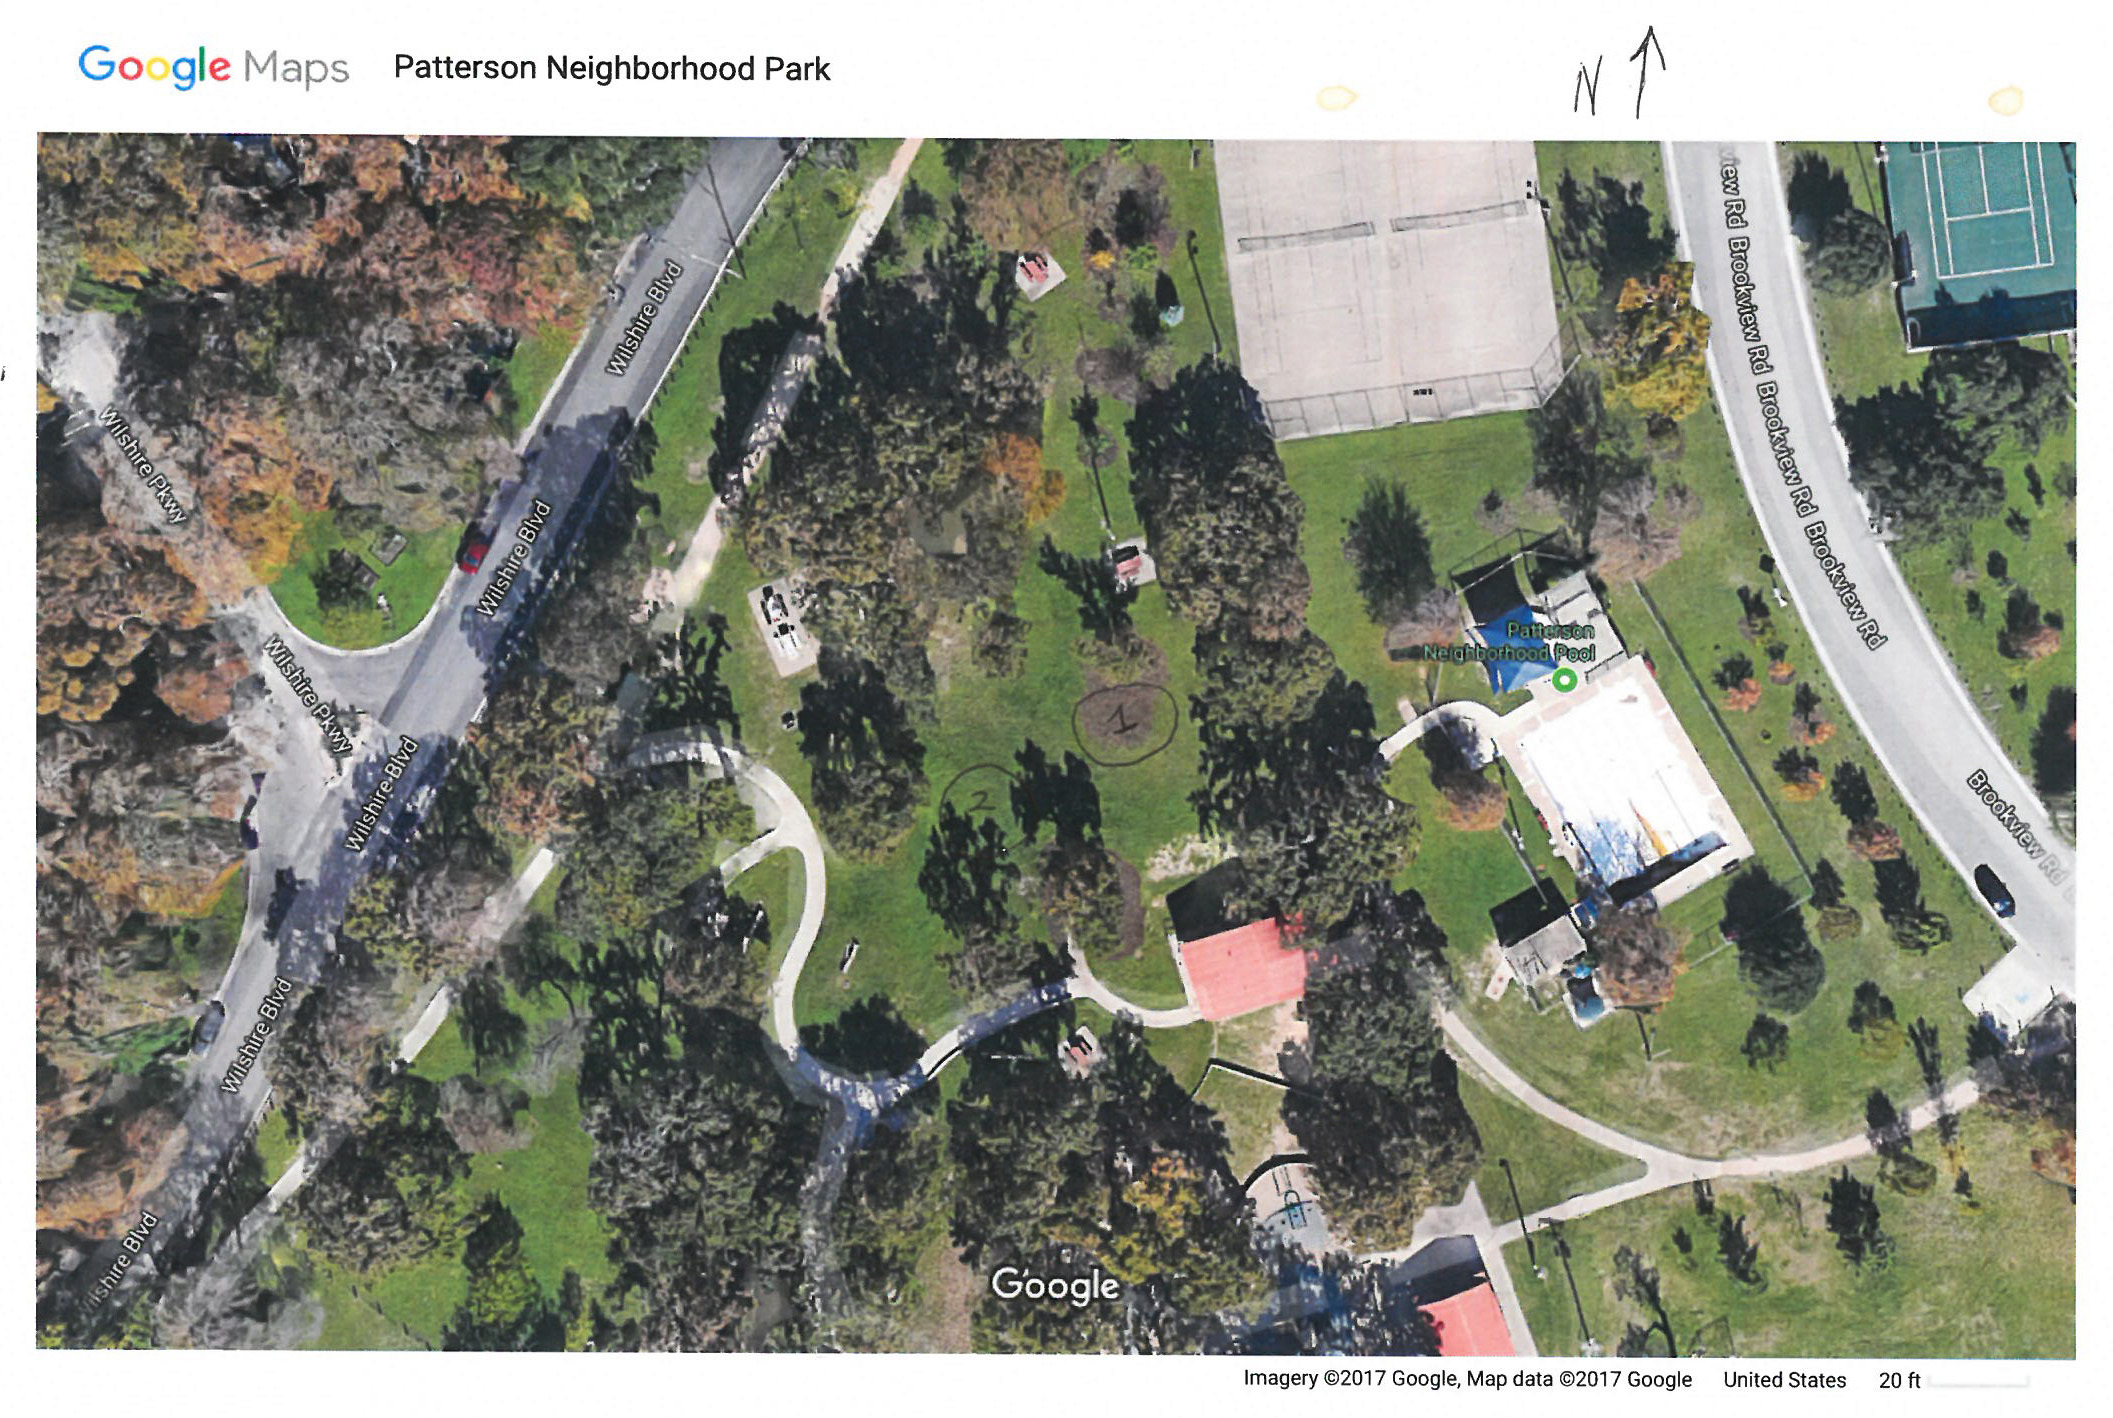 Google Earth view of Patterson: tree planting areas 1 and 2